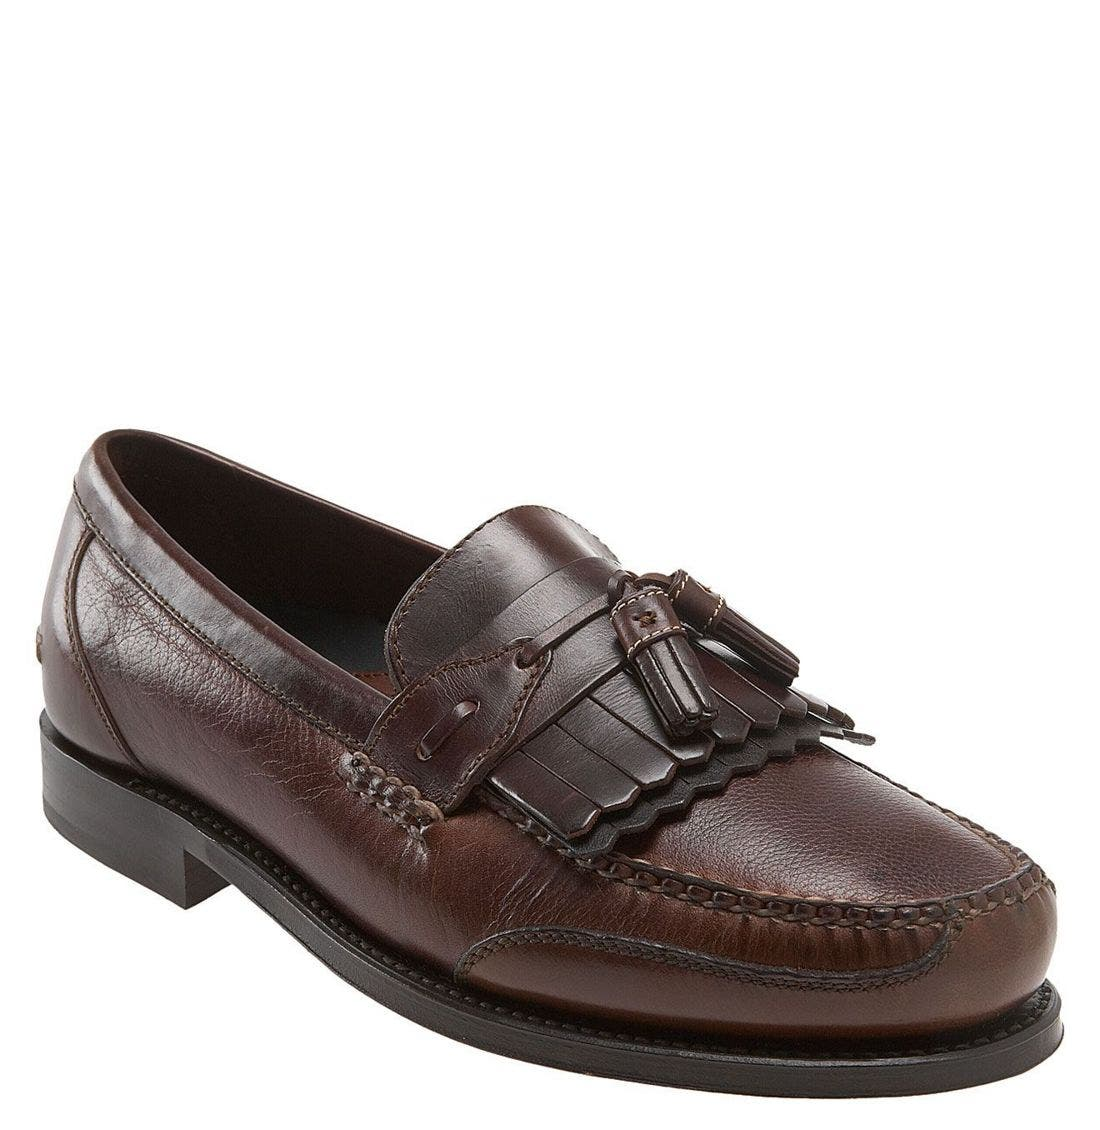 'Murphy' Loafer,                             Main thumbnail 1, color,                             Walnut